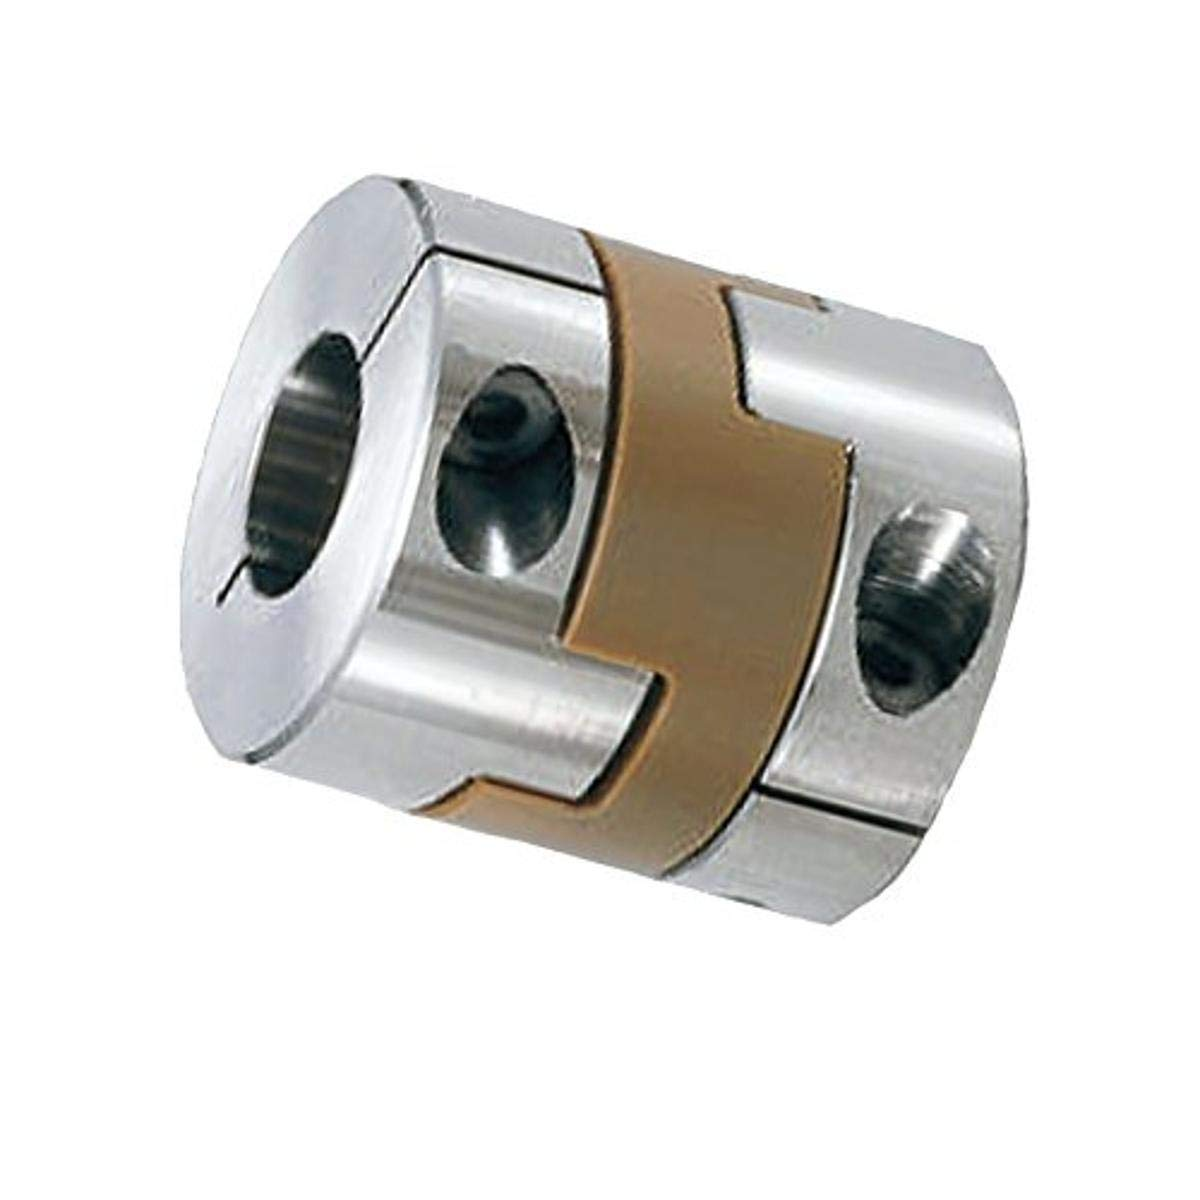 NBK MOHS-32C-10-12 Oldham Cleanroom/Vacuum/Heat Resistant Coupling, VESPEL, Clamping Type, Bore Diameters 10 and 12 mm, Stainless Steel SUS303